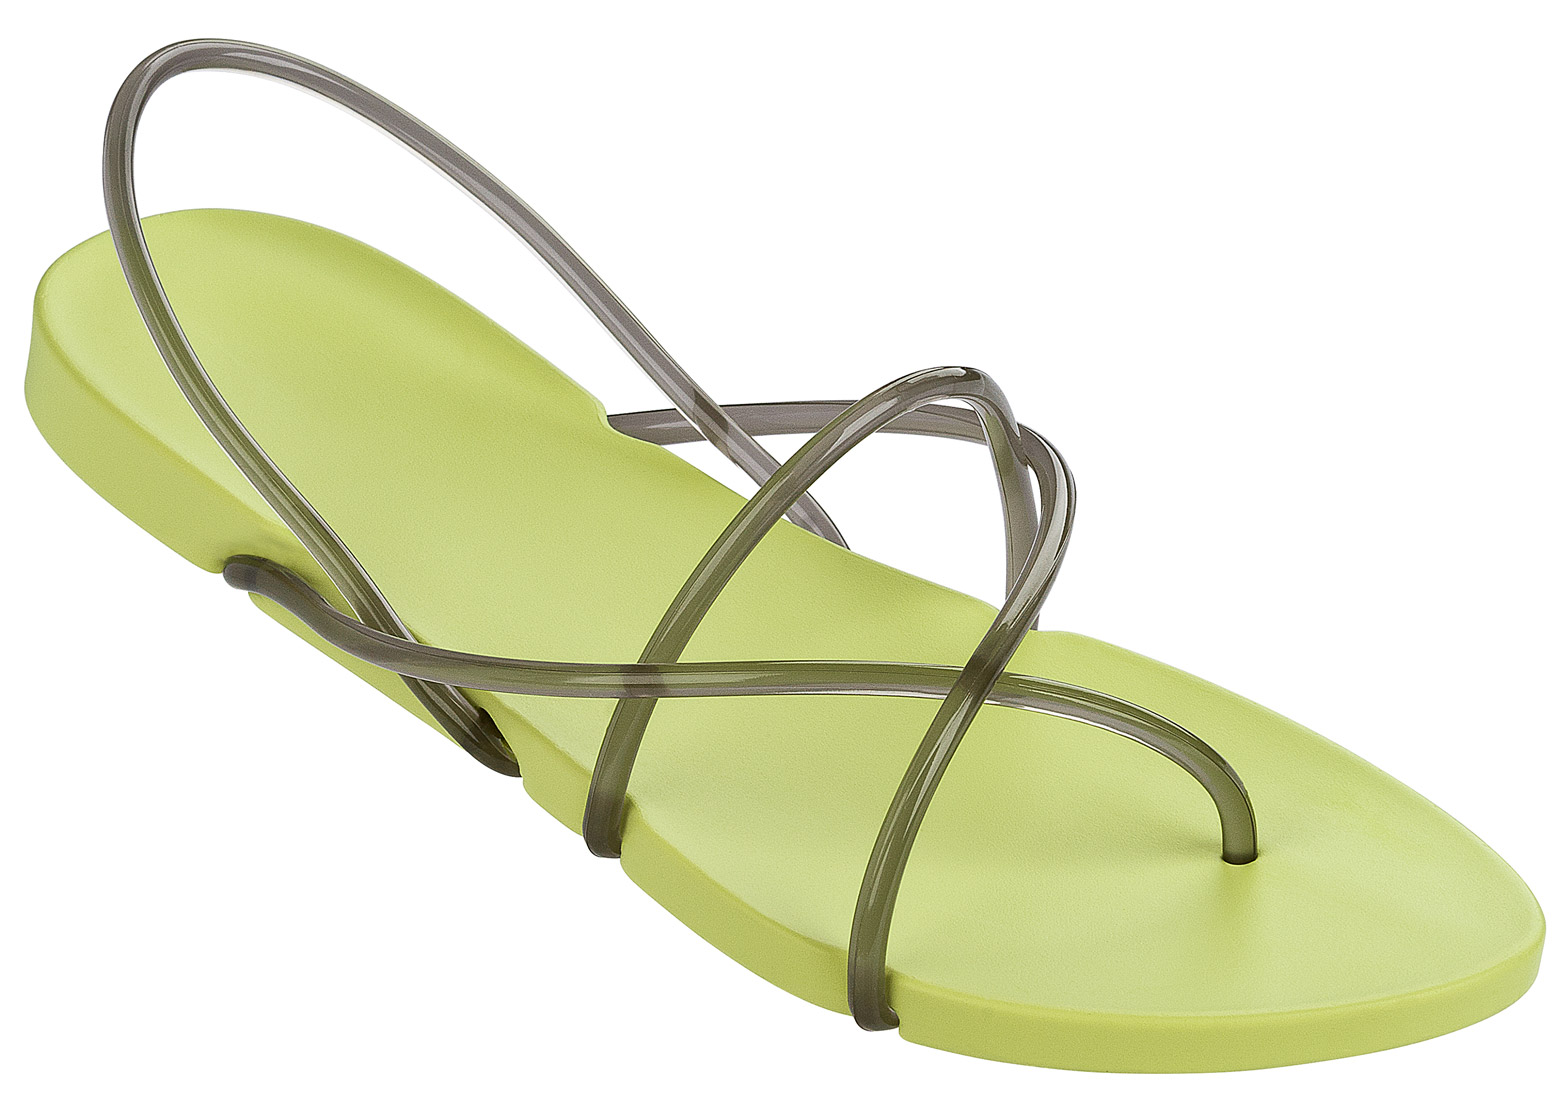 69afe4bdffe3bf Philippe Starck designs collection of recyclable flip-flops for Ipanema